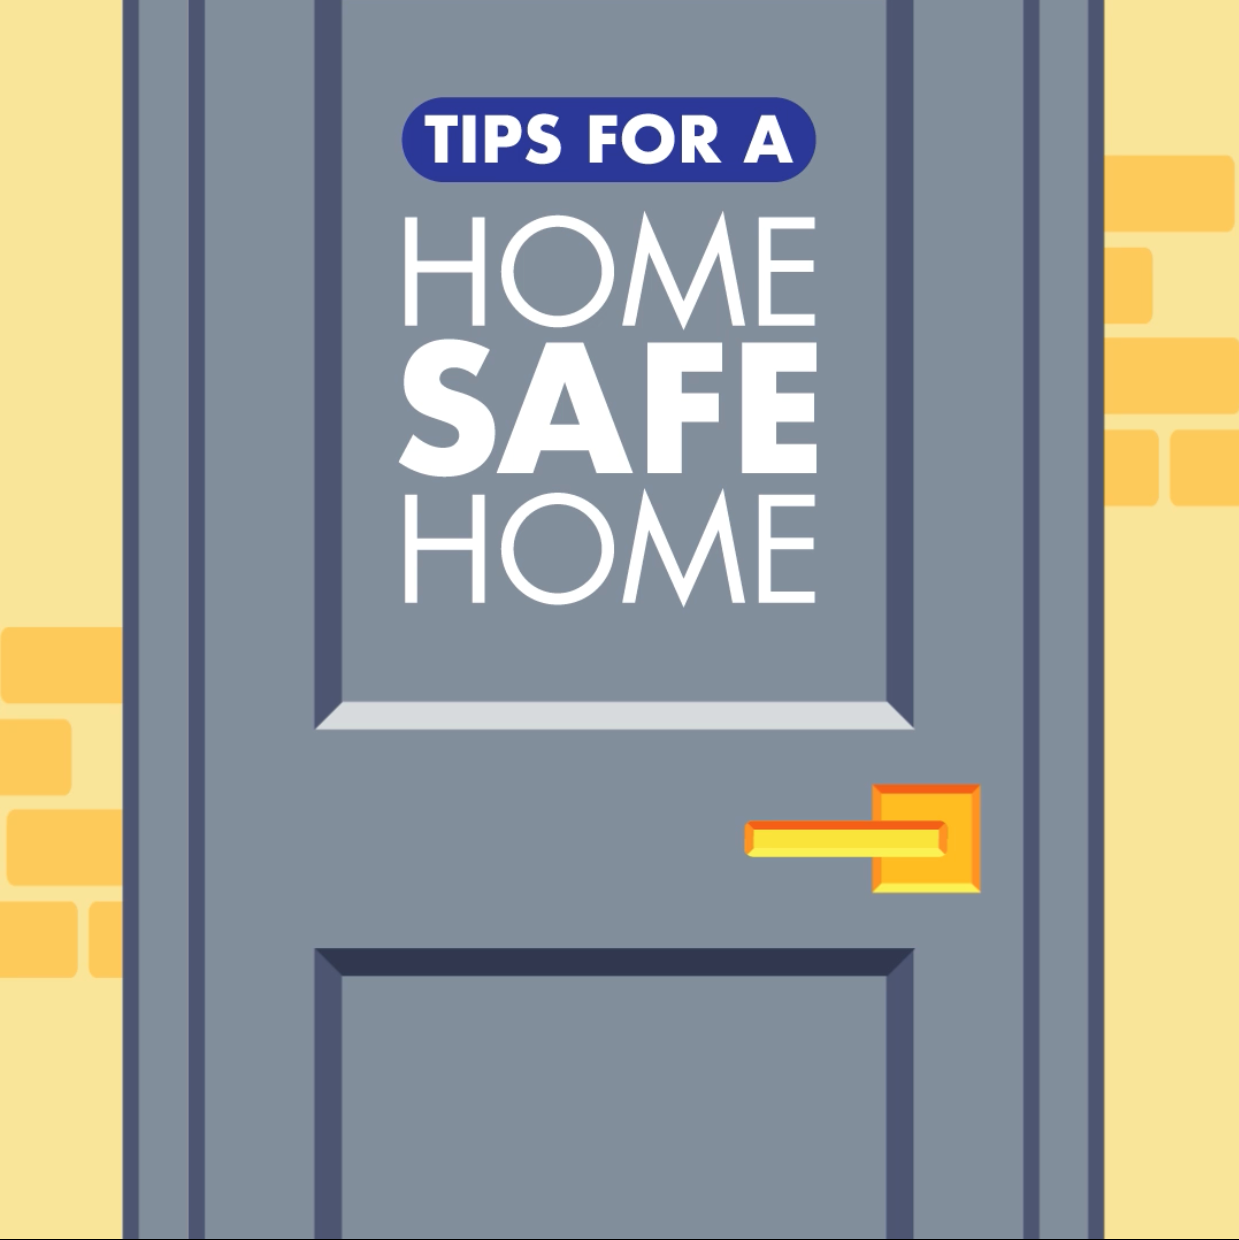 safe-home-tips